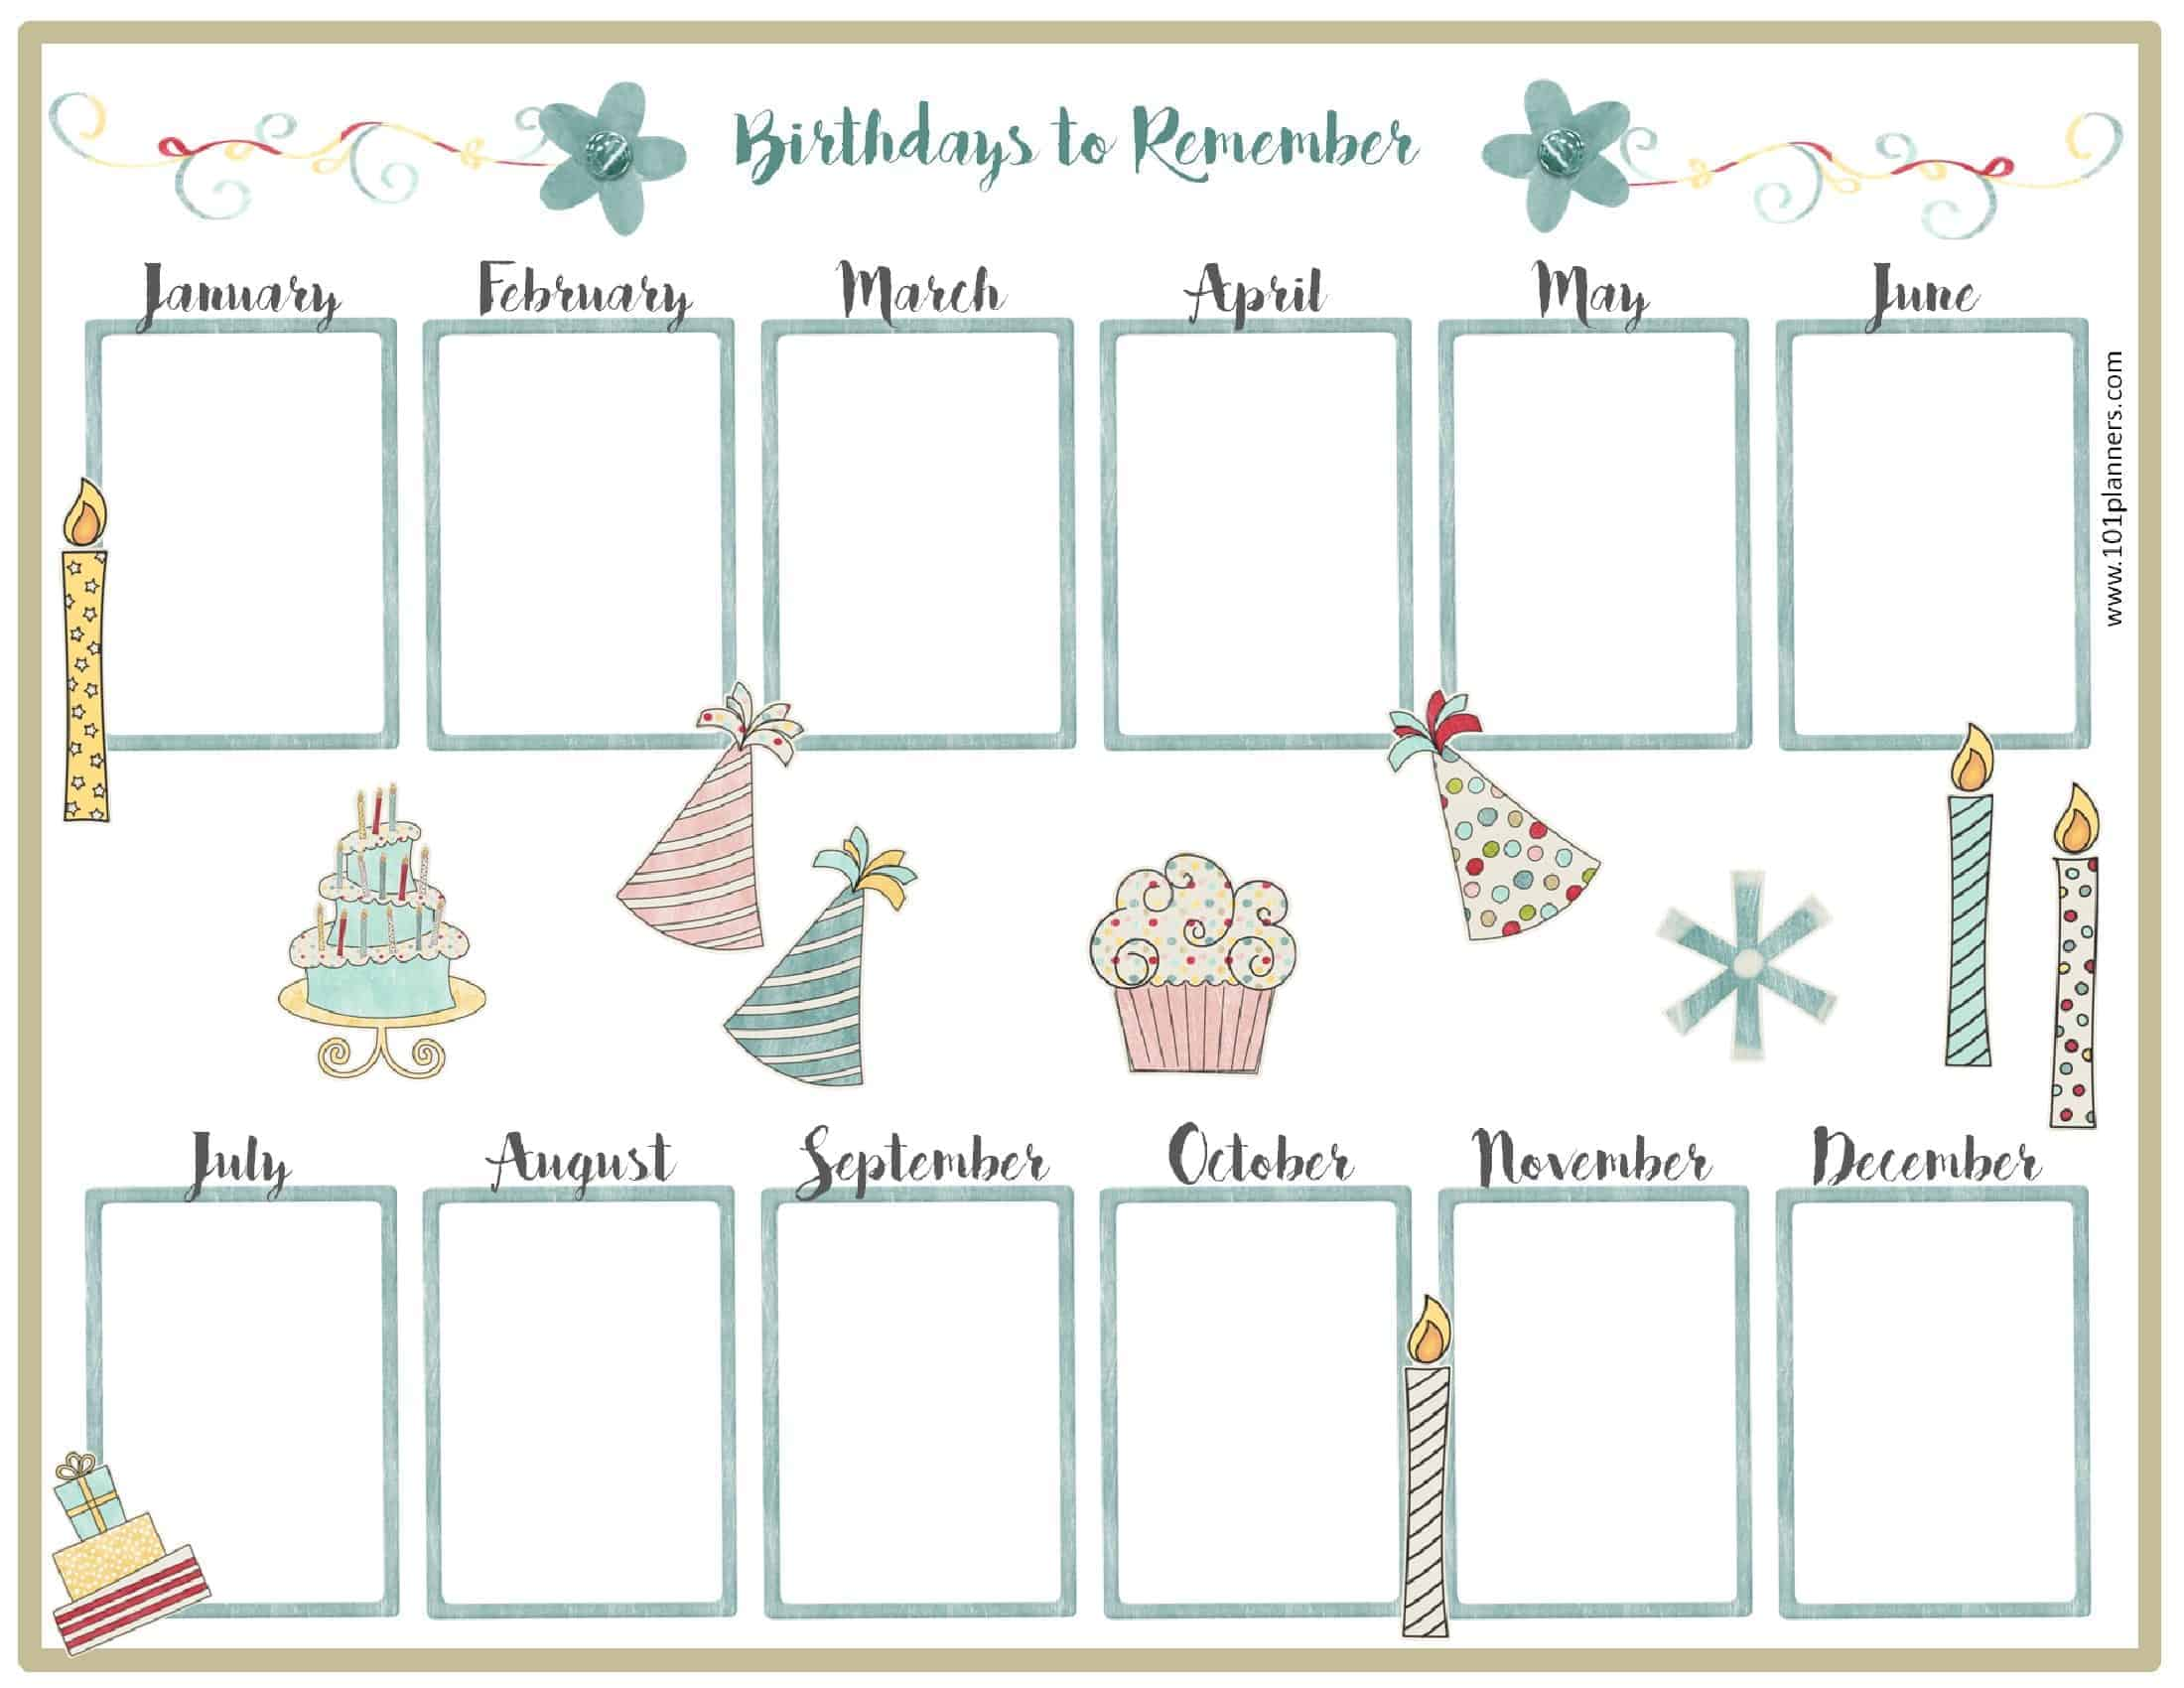 photo about Free Printable Perpetual Birthday Calendar Template named Totally free Birthday Calendar Printable Customizable Lots of